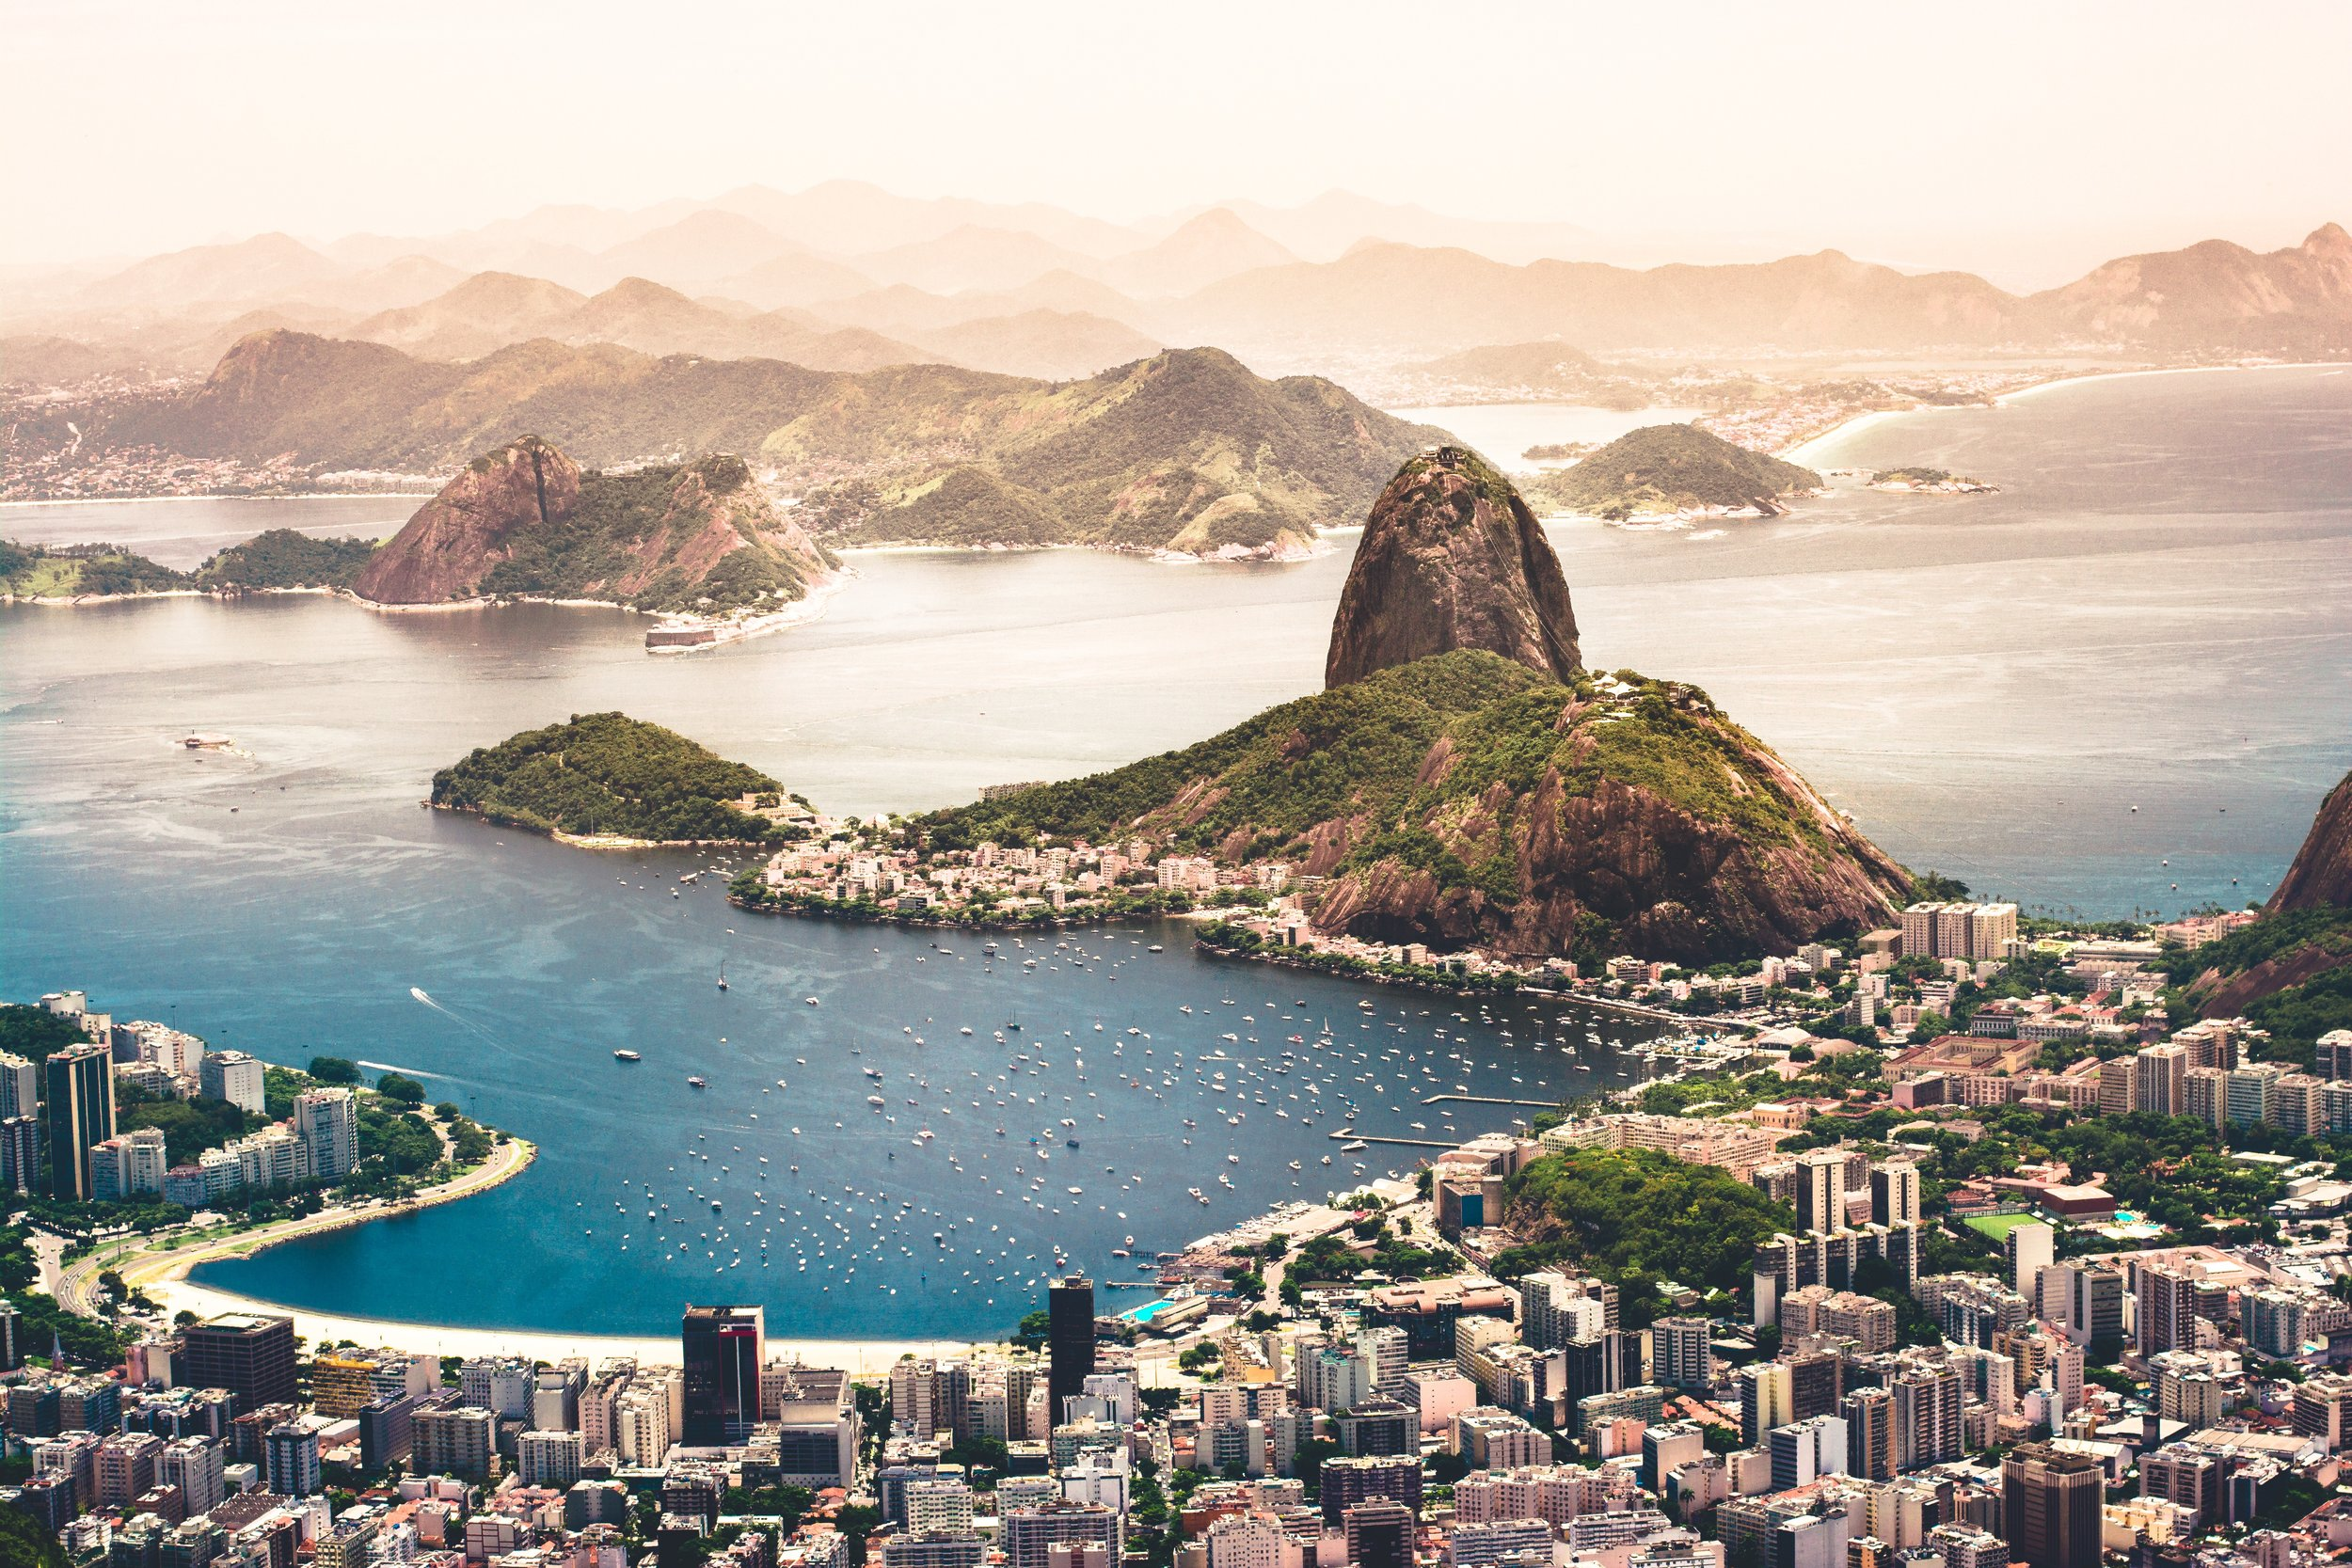 Rio de Janeiro - The world's most exciting city